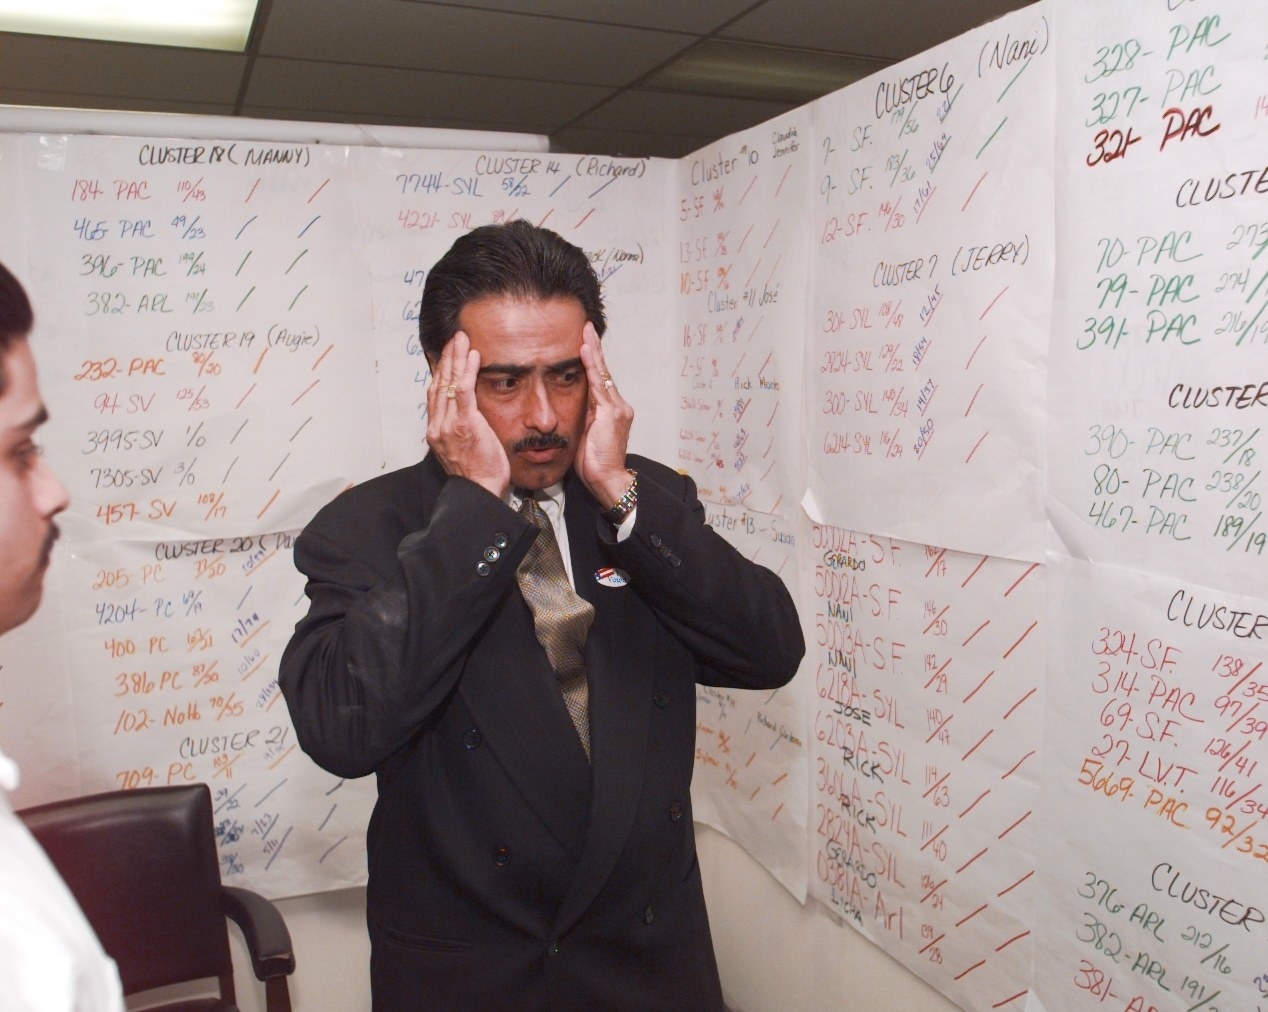 A man in a suit holds both hands up to his temples, surrounded by paper-covered walls filled with numbers describing election results